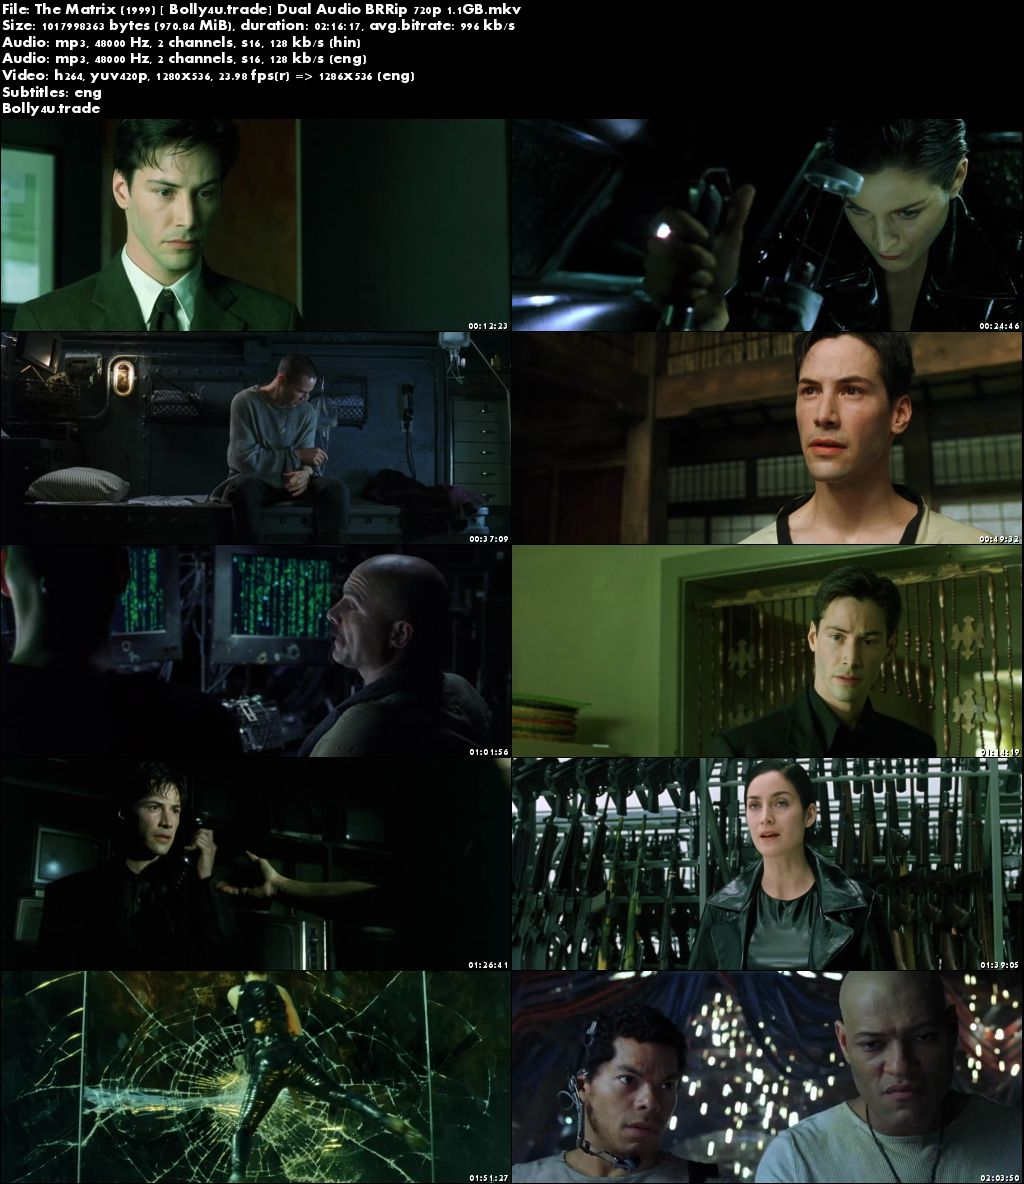 The Matrix 1999 BluRay Hindi Dubbed Dual Audio 720p ESub Download